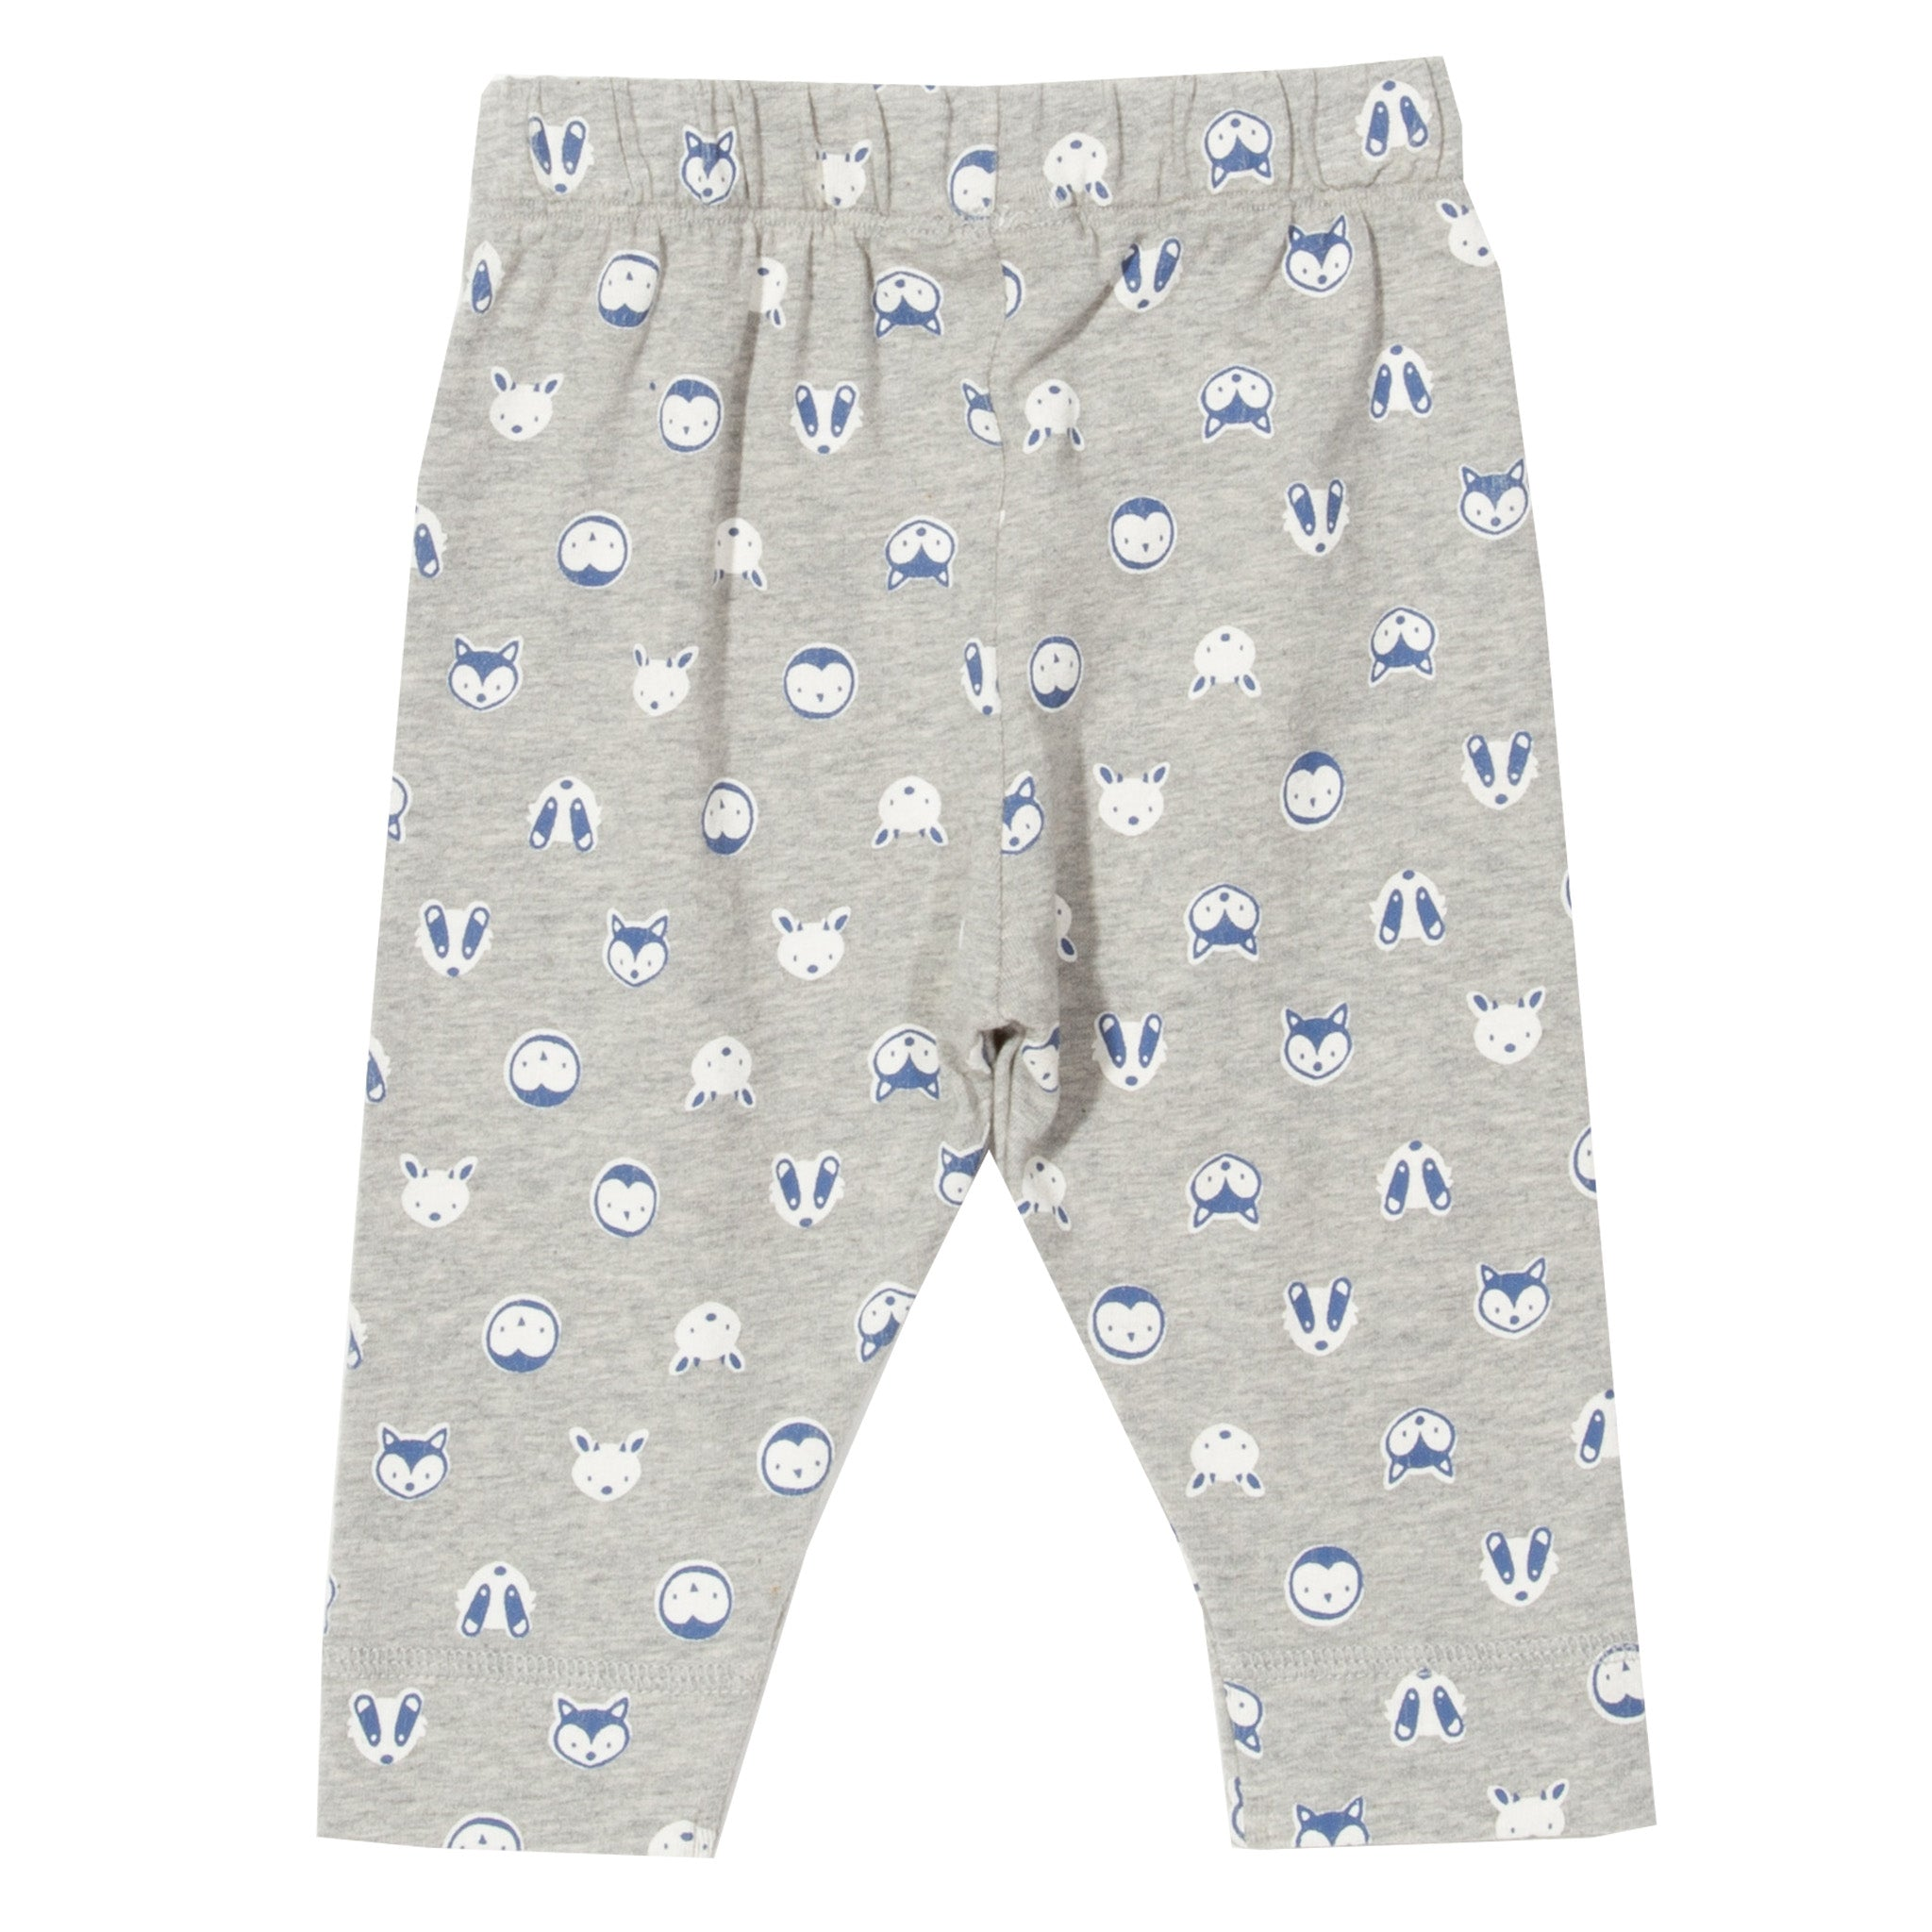 Kite Forest friends leggings - The Mango Tree